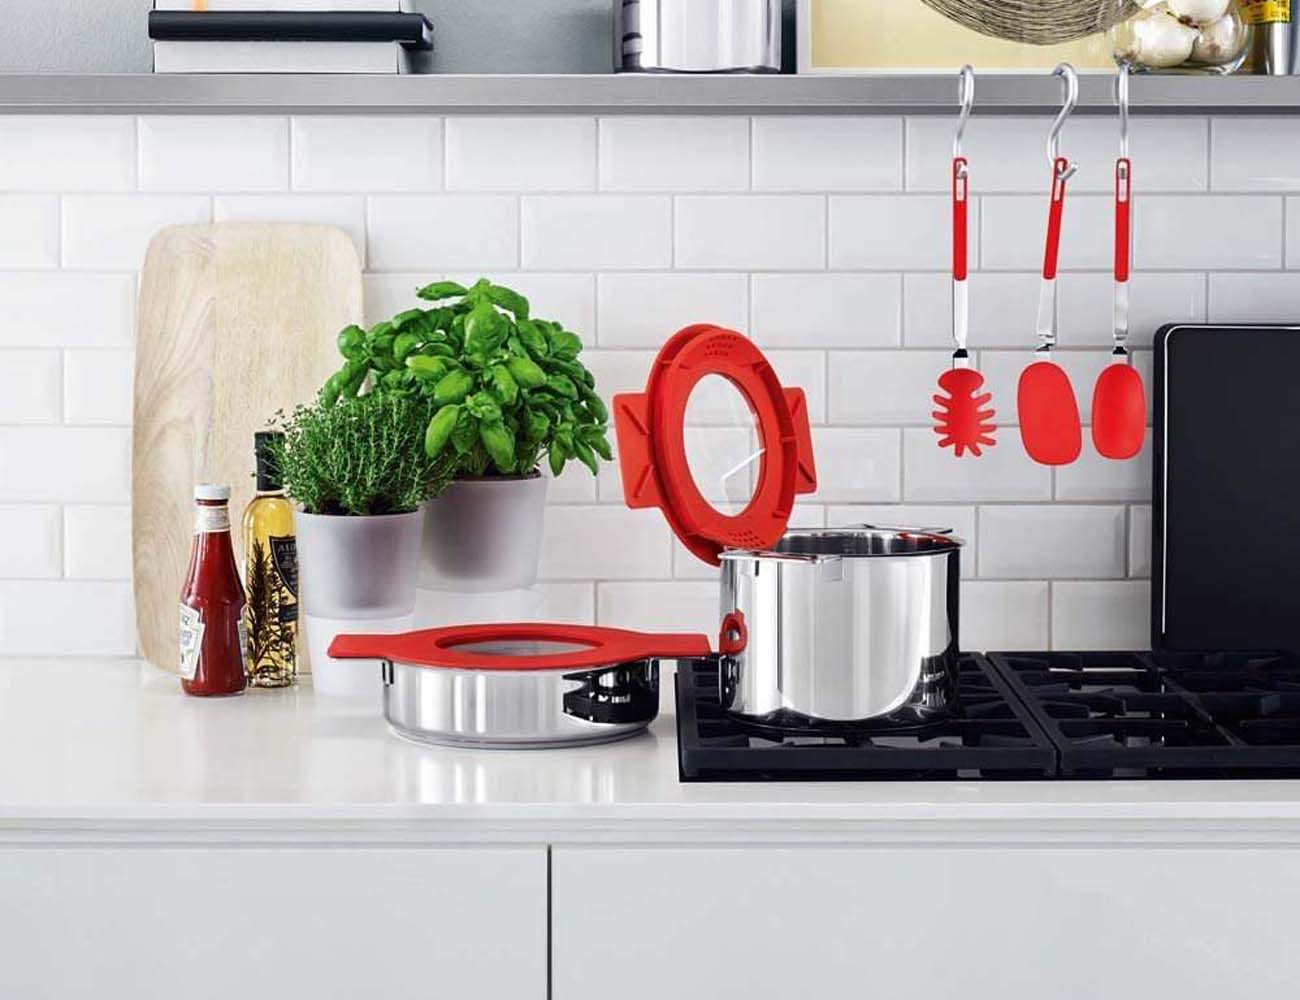 Gravity Cookware – New Series of Pots and Pans by Eva Solo